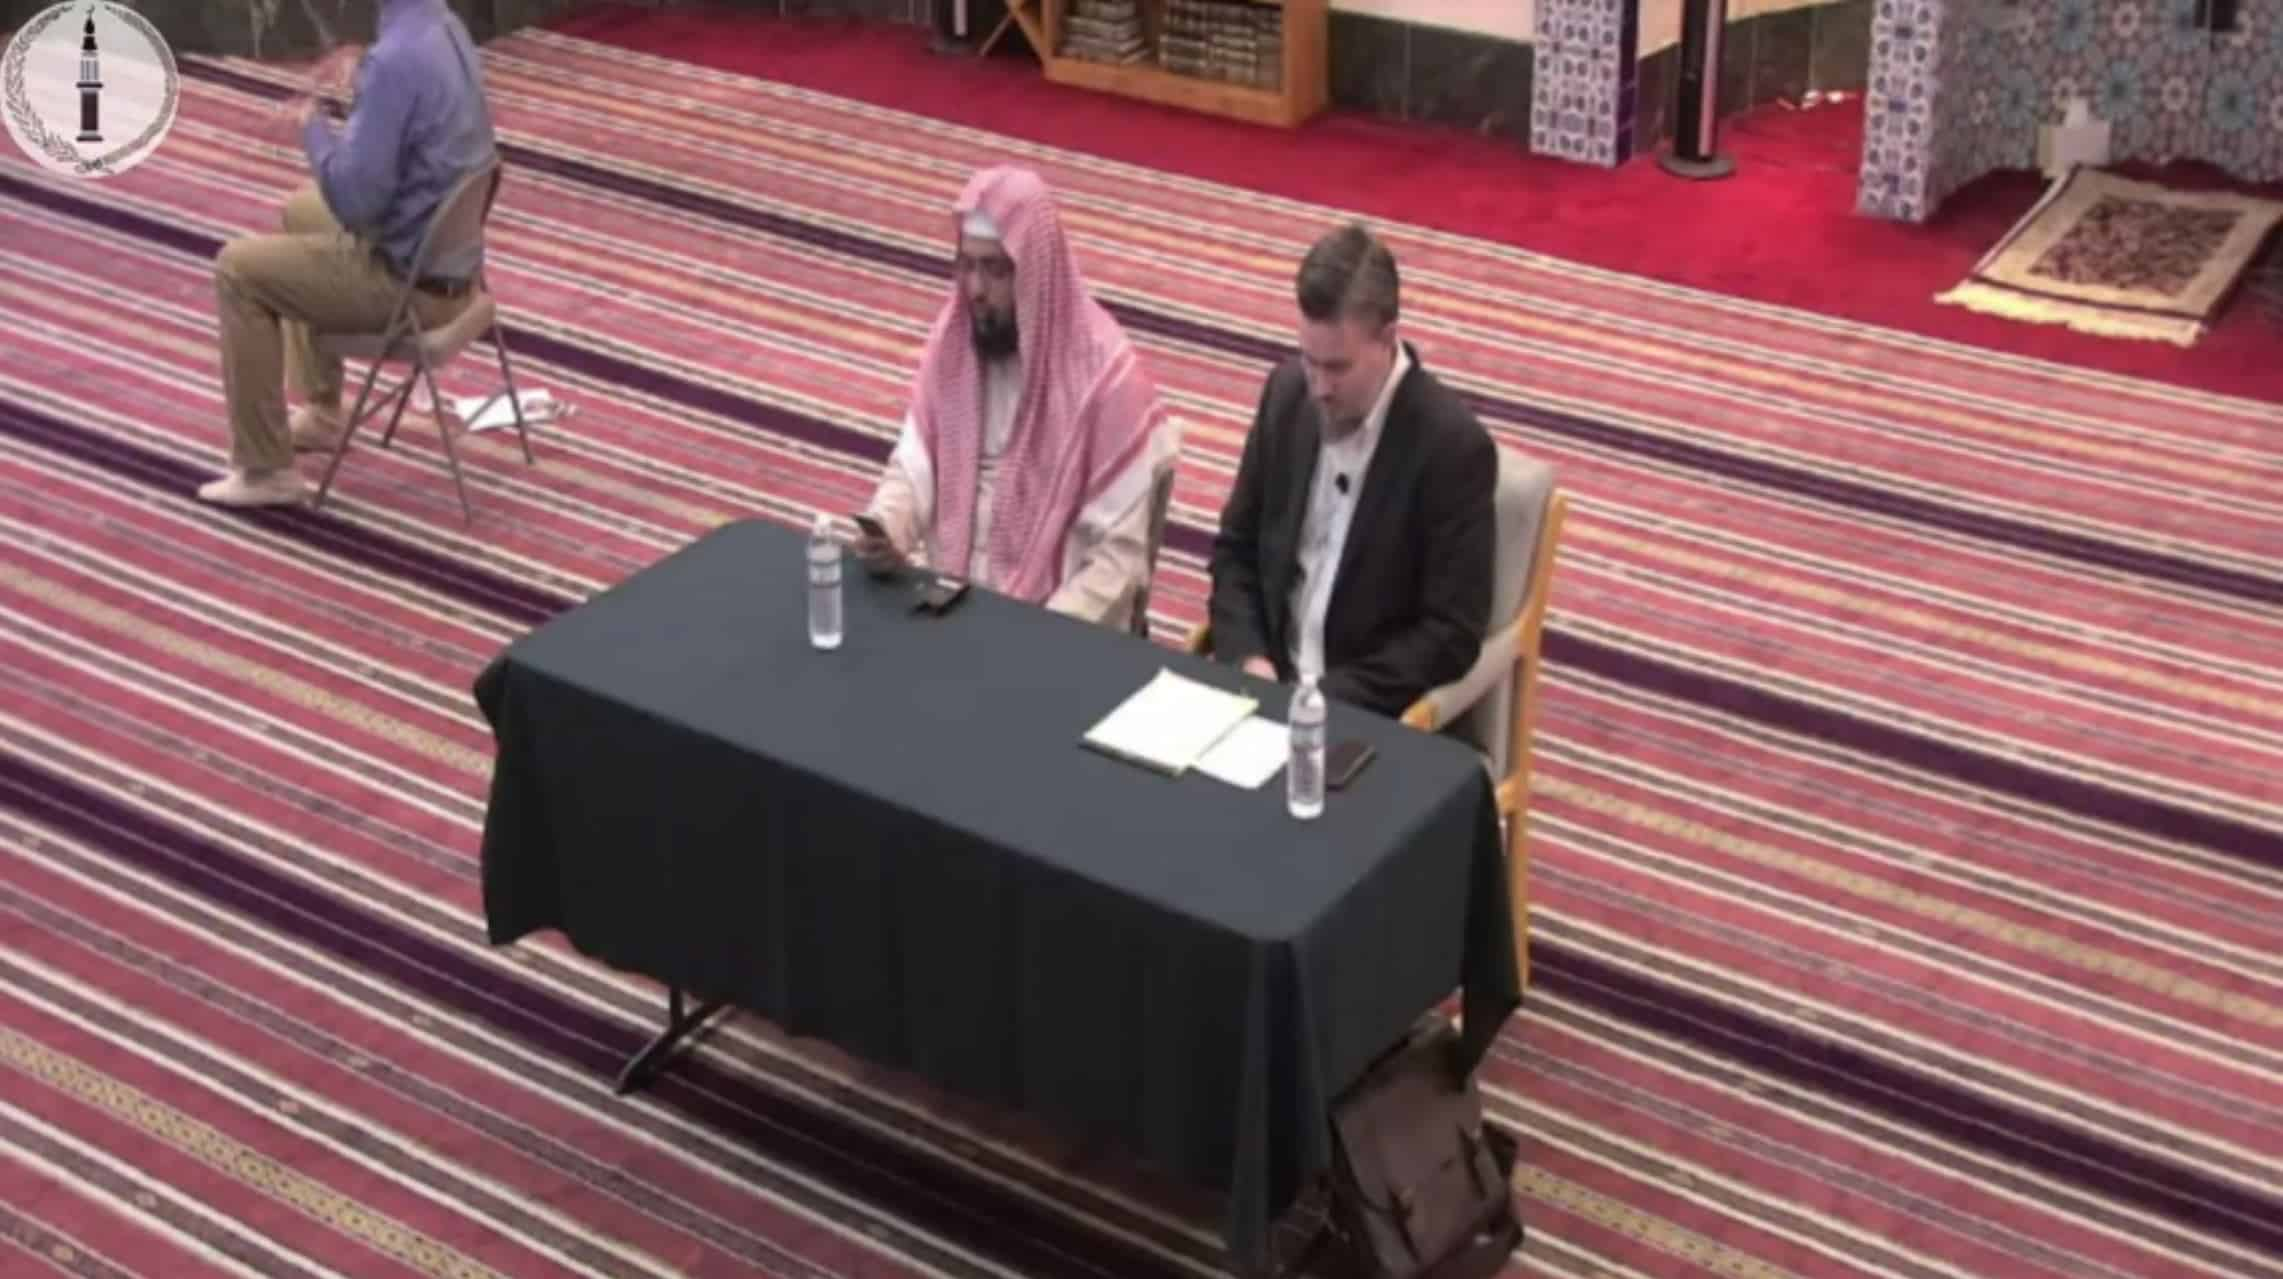 Joe Bradford – Islamic Financing and Transactions